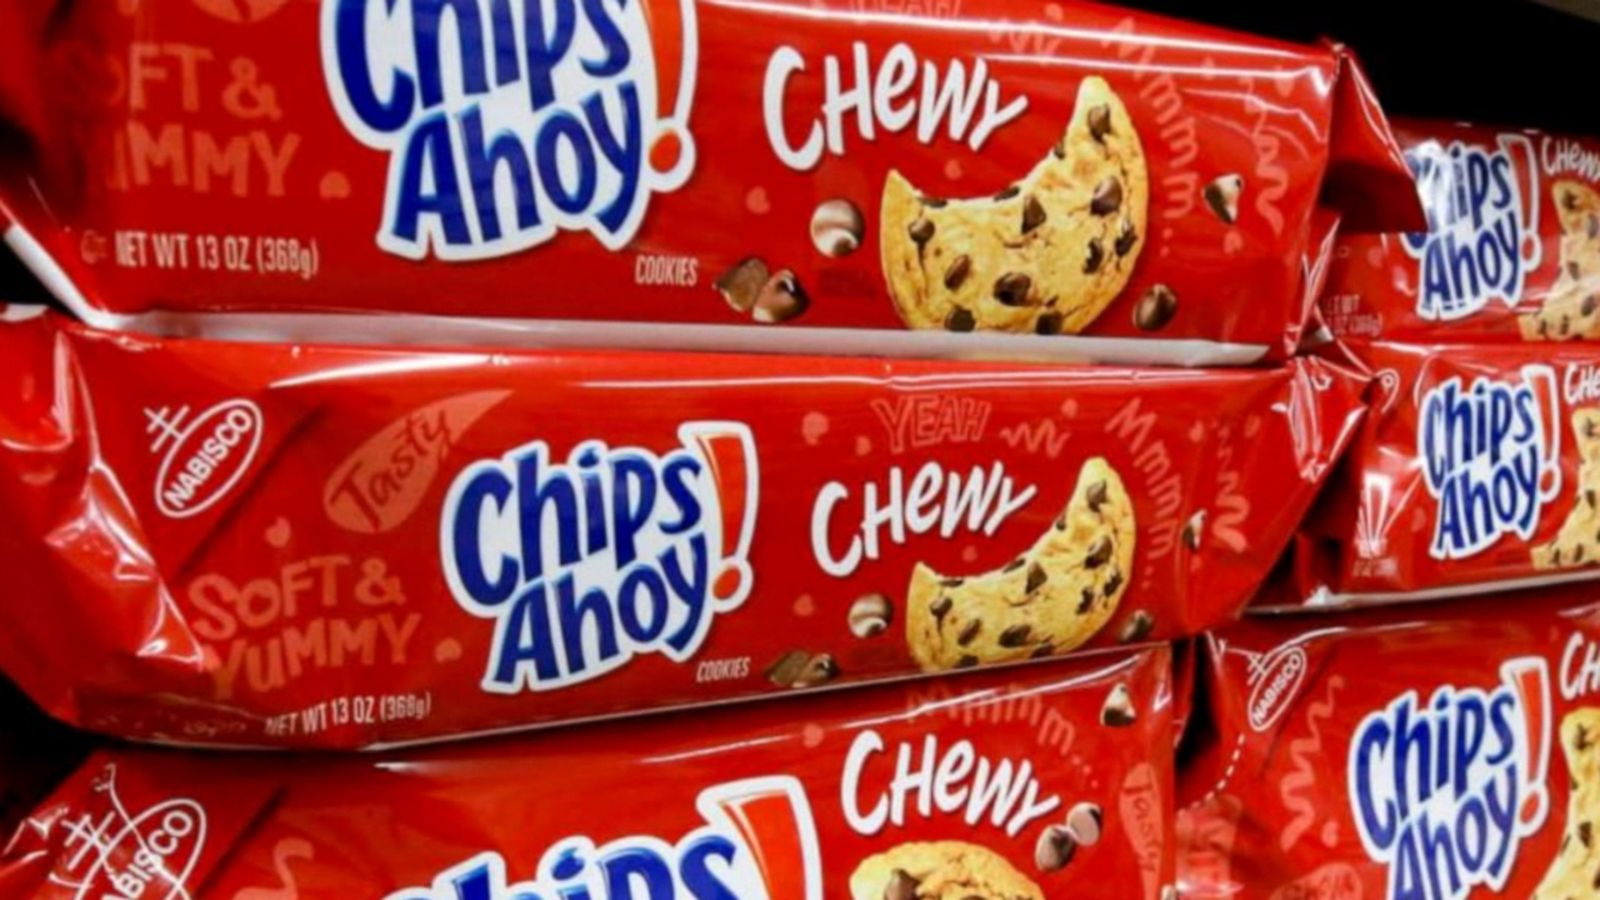 Chewy Chips Ahoy cookies recalled due to unexpected solidified 1600x900